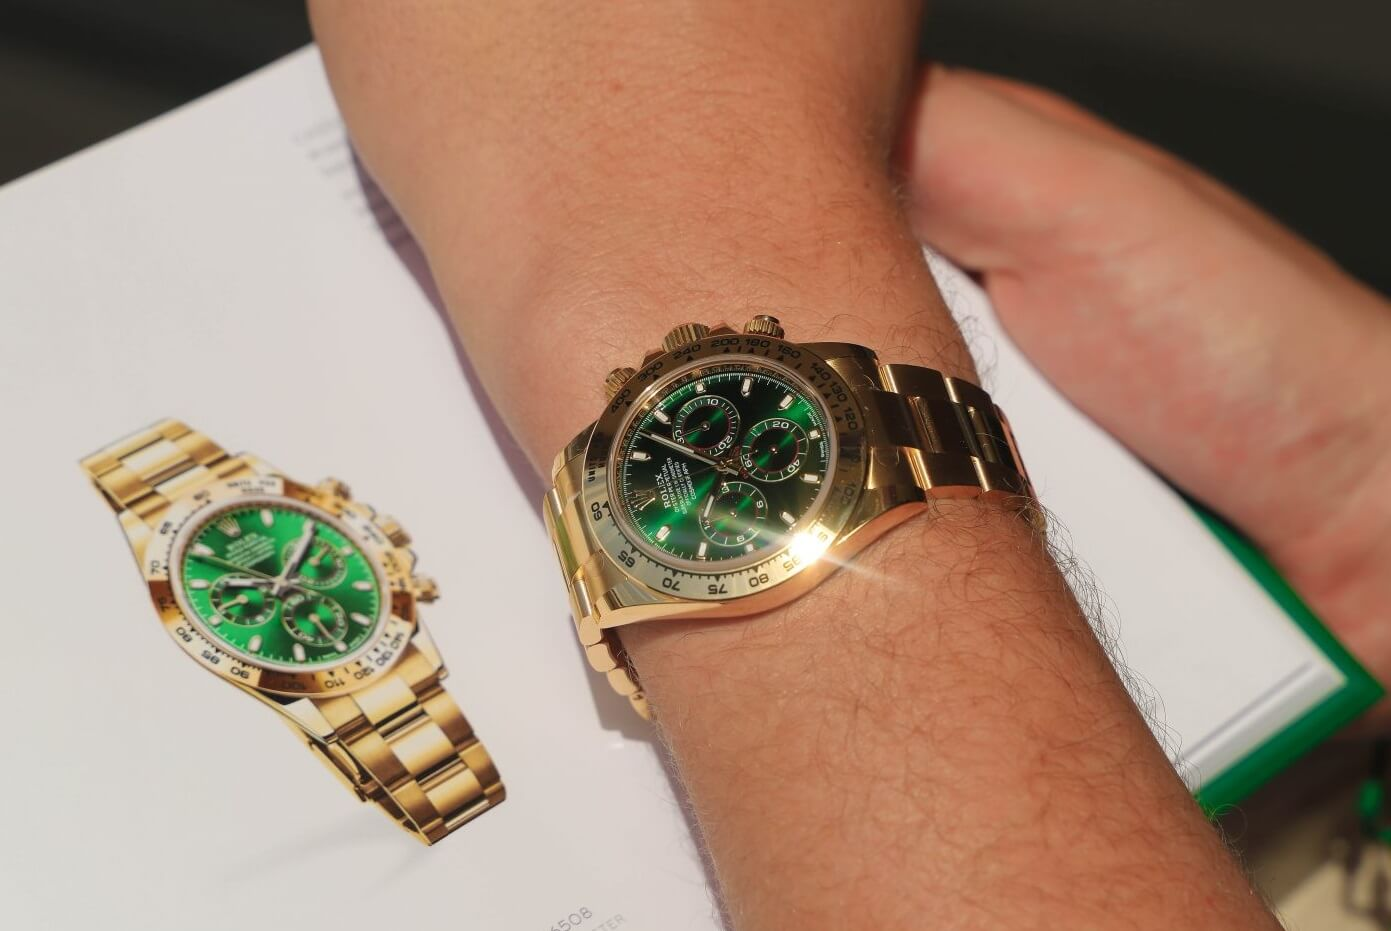 Rolex Daytona Replica 116508 Green Dial 18k Yellow Gold